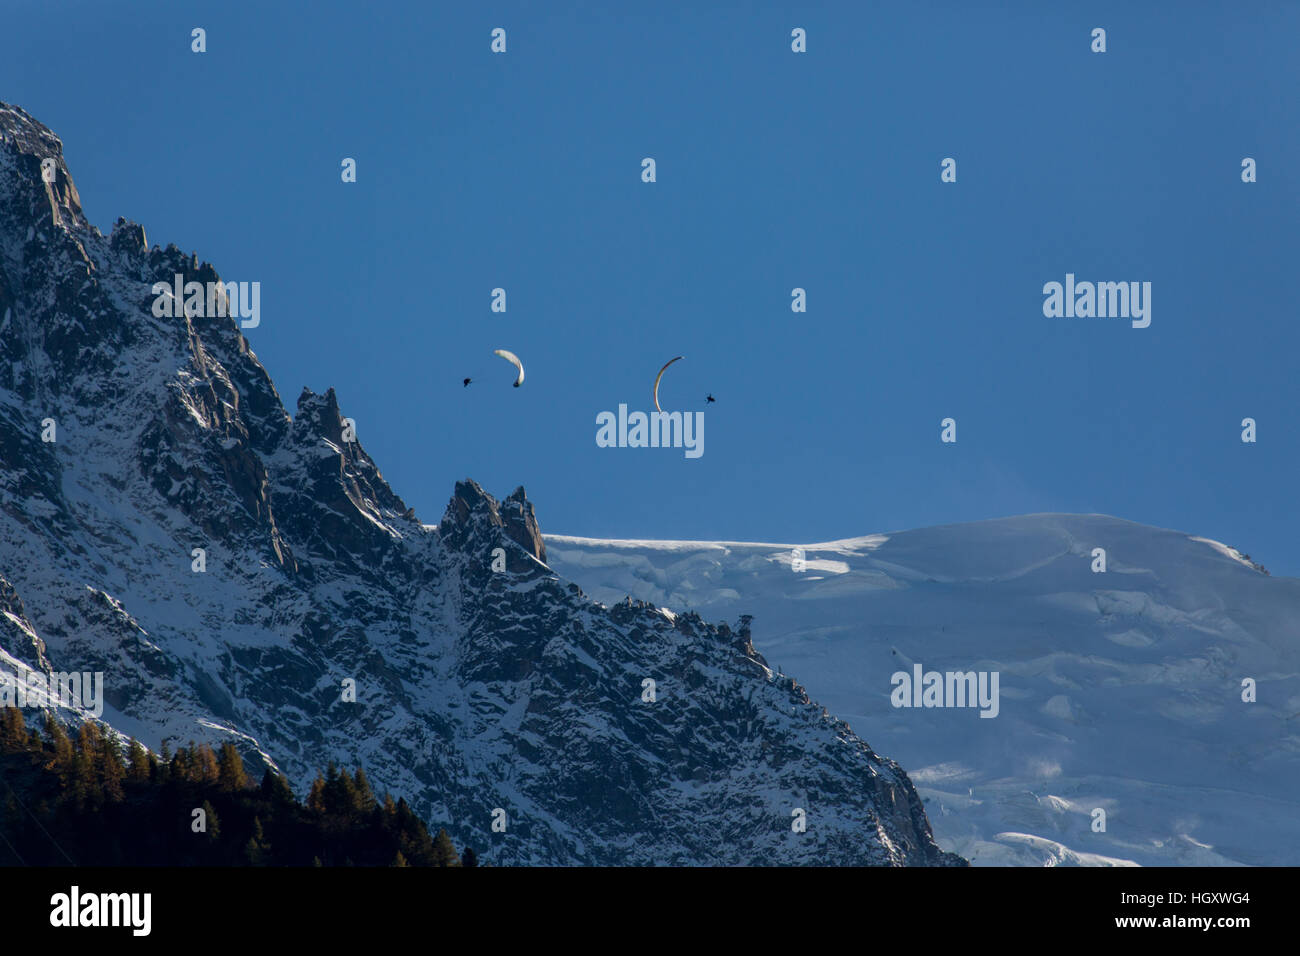 A parapenter flying in the Chamonix valley Stock Photo